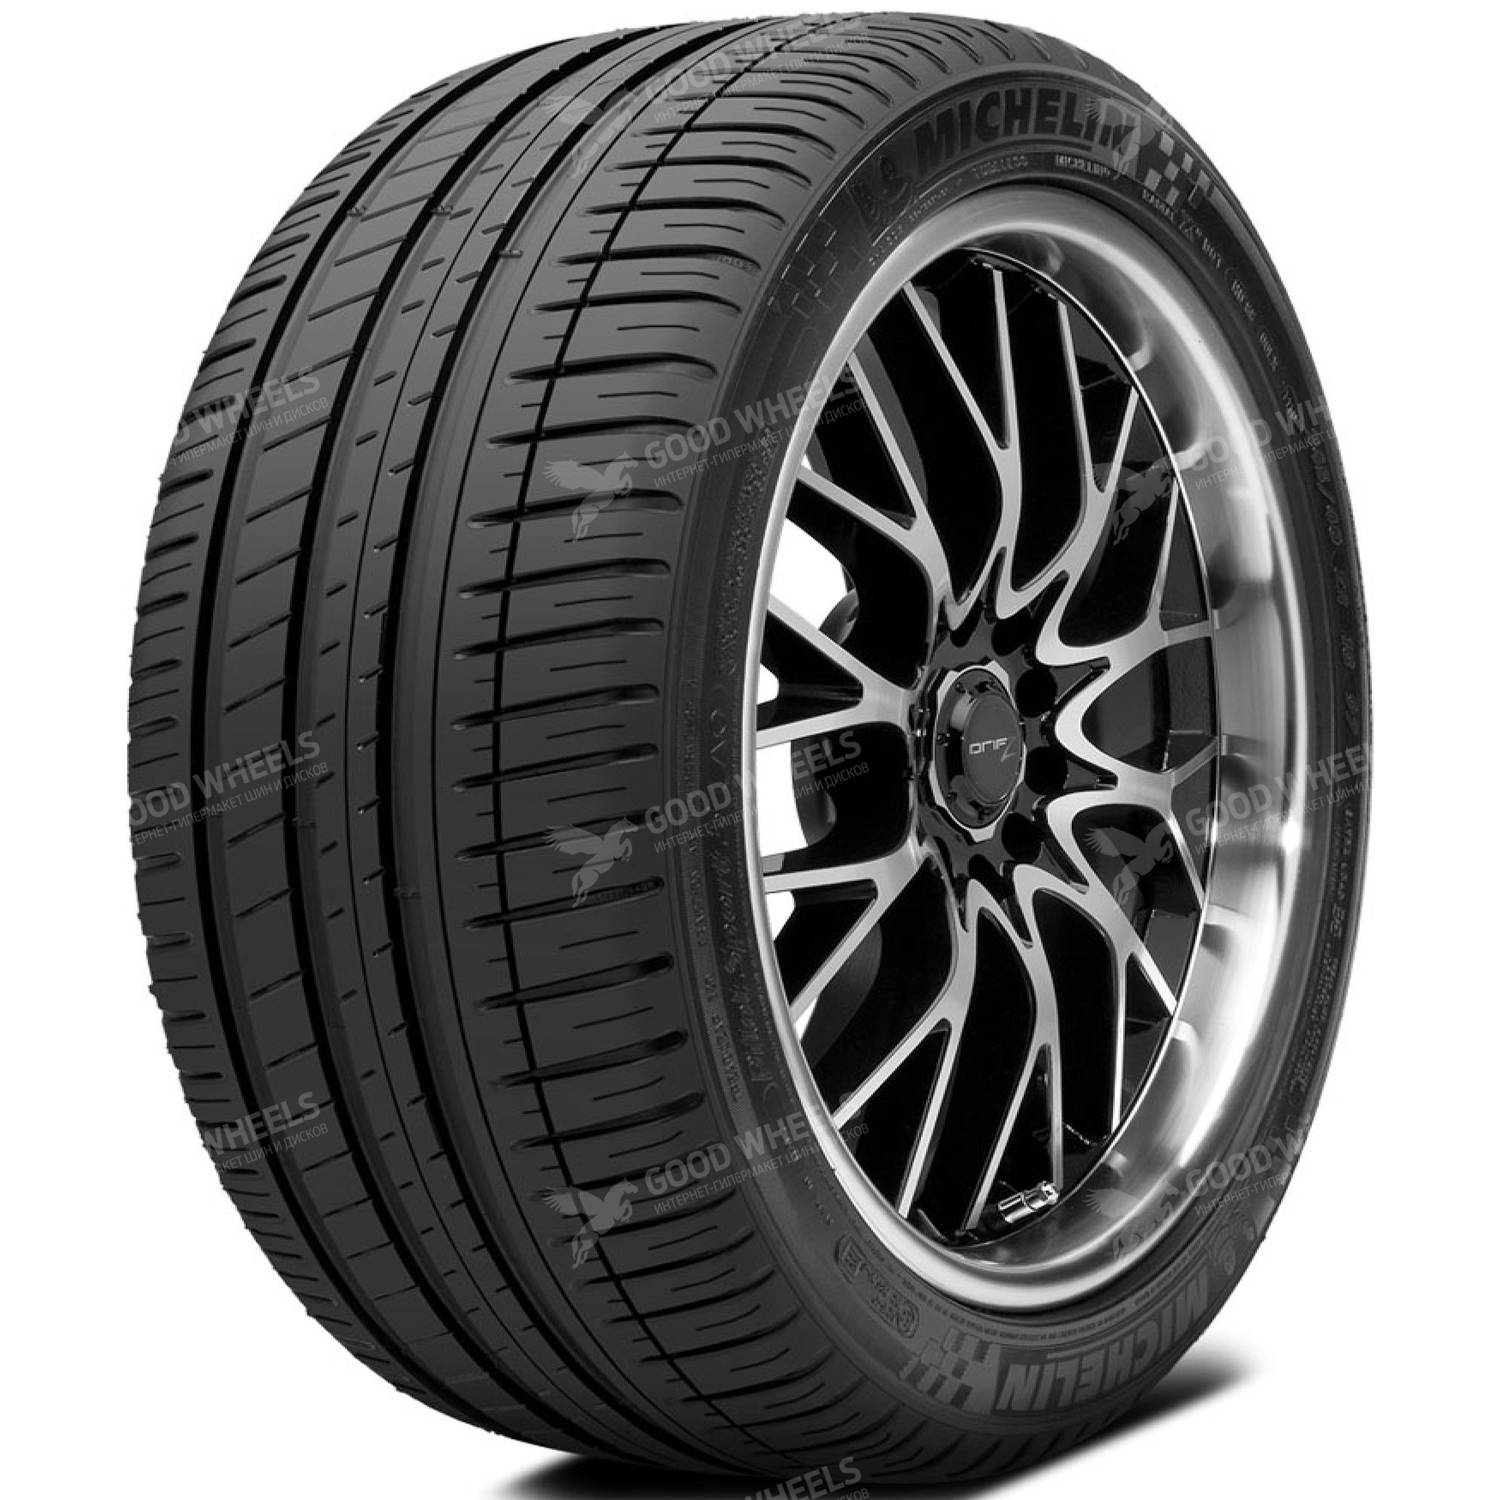 Michelin Pilot Sport 3 (PS3) 225/40 R18 92W